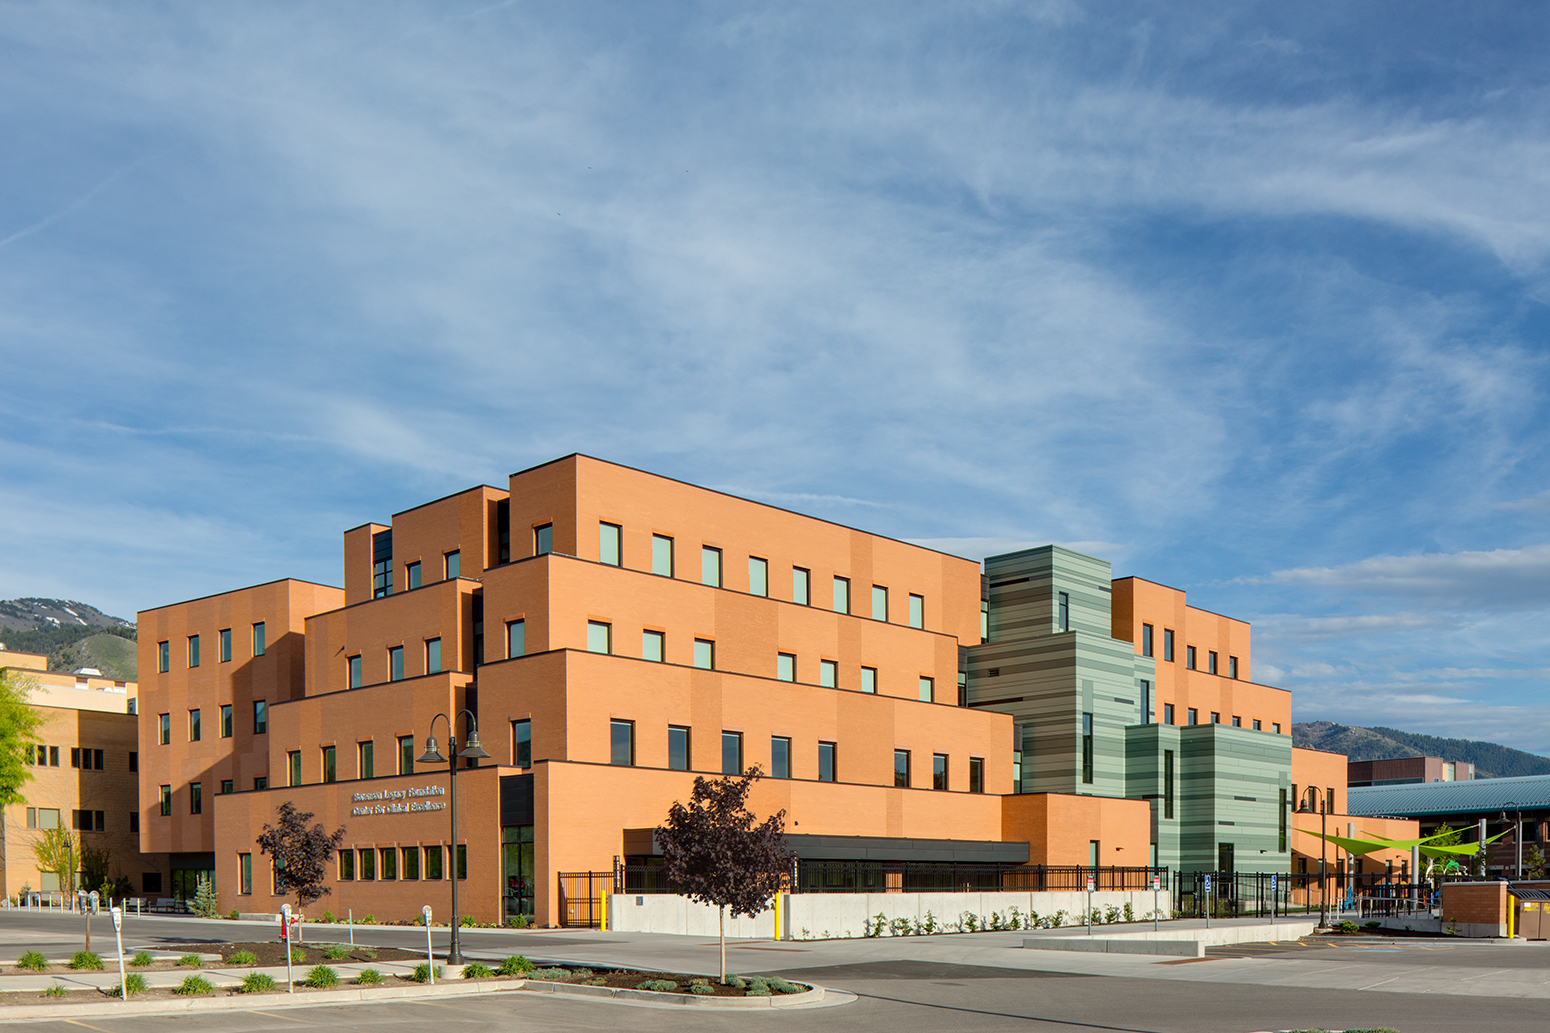 Sorenson Legacy Foundation for Clinical Excellence, Utah State University. Jacoby Architects.Architectural Photography by: Paul Richer / RICHER IMAGES